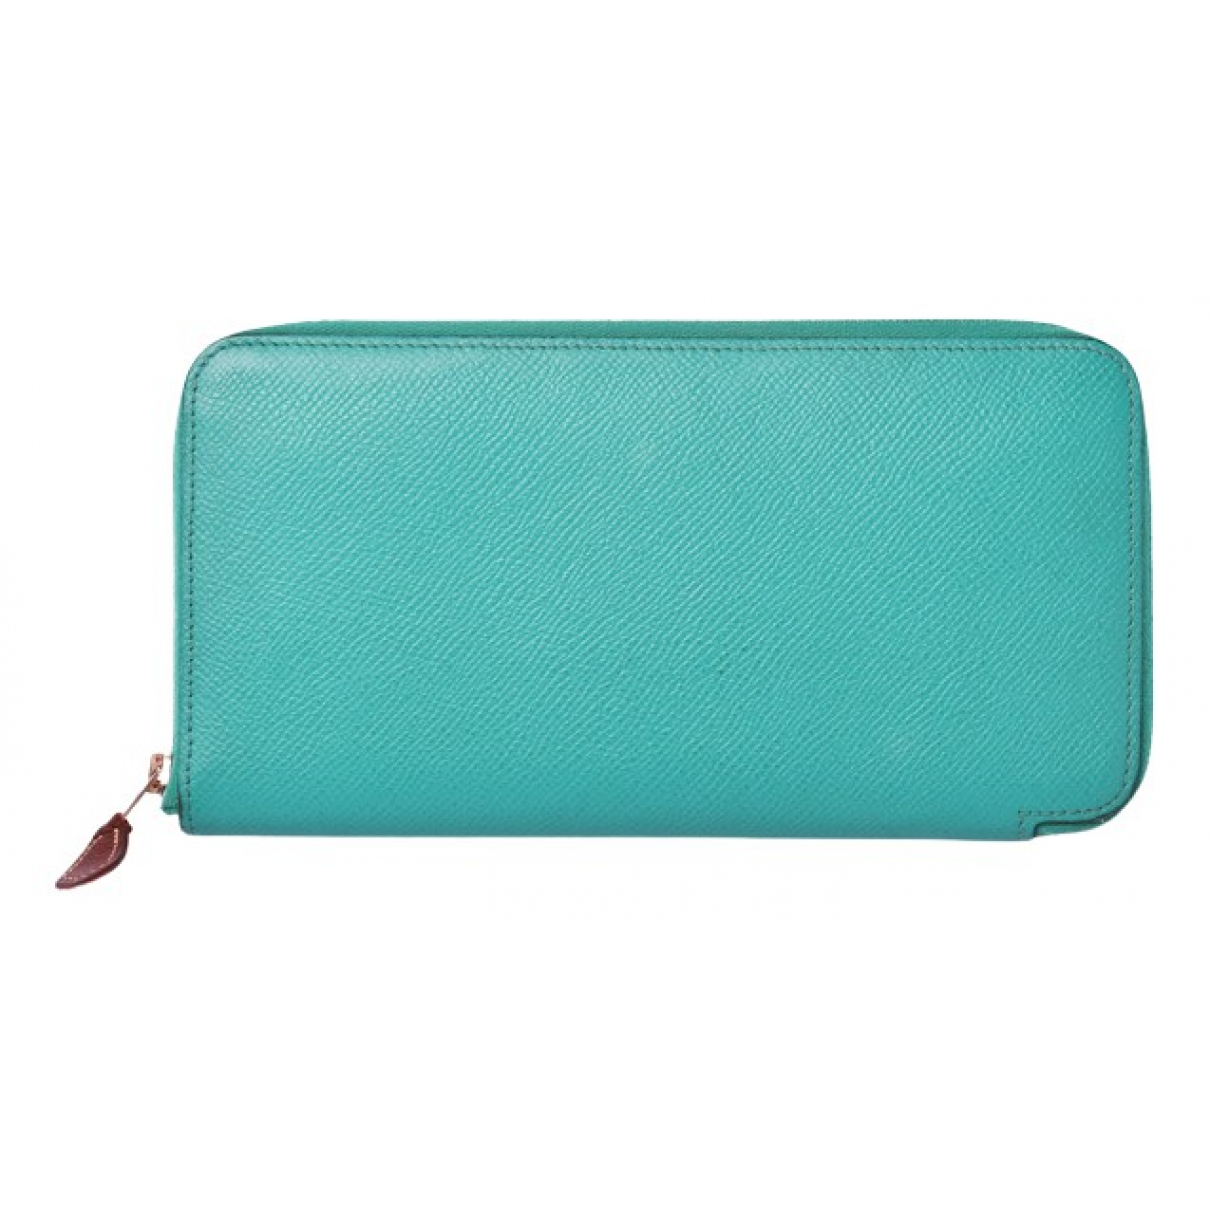 Hermès Azap Turquoise Leather wallet for Women N